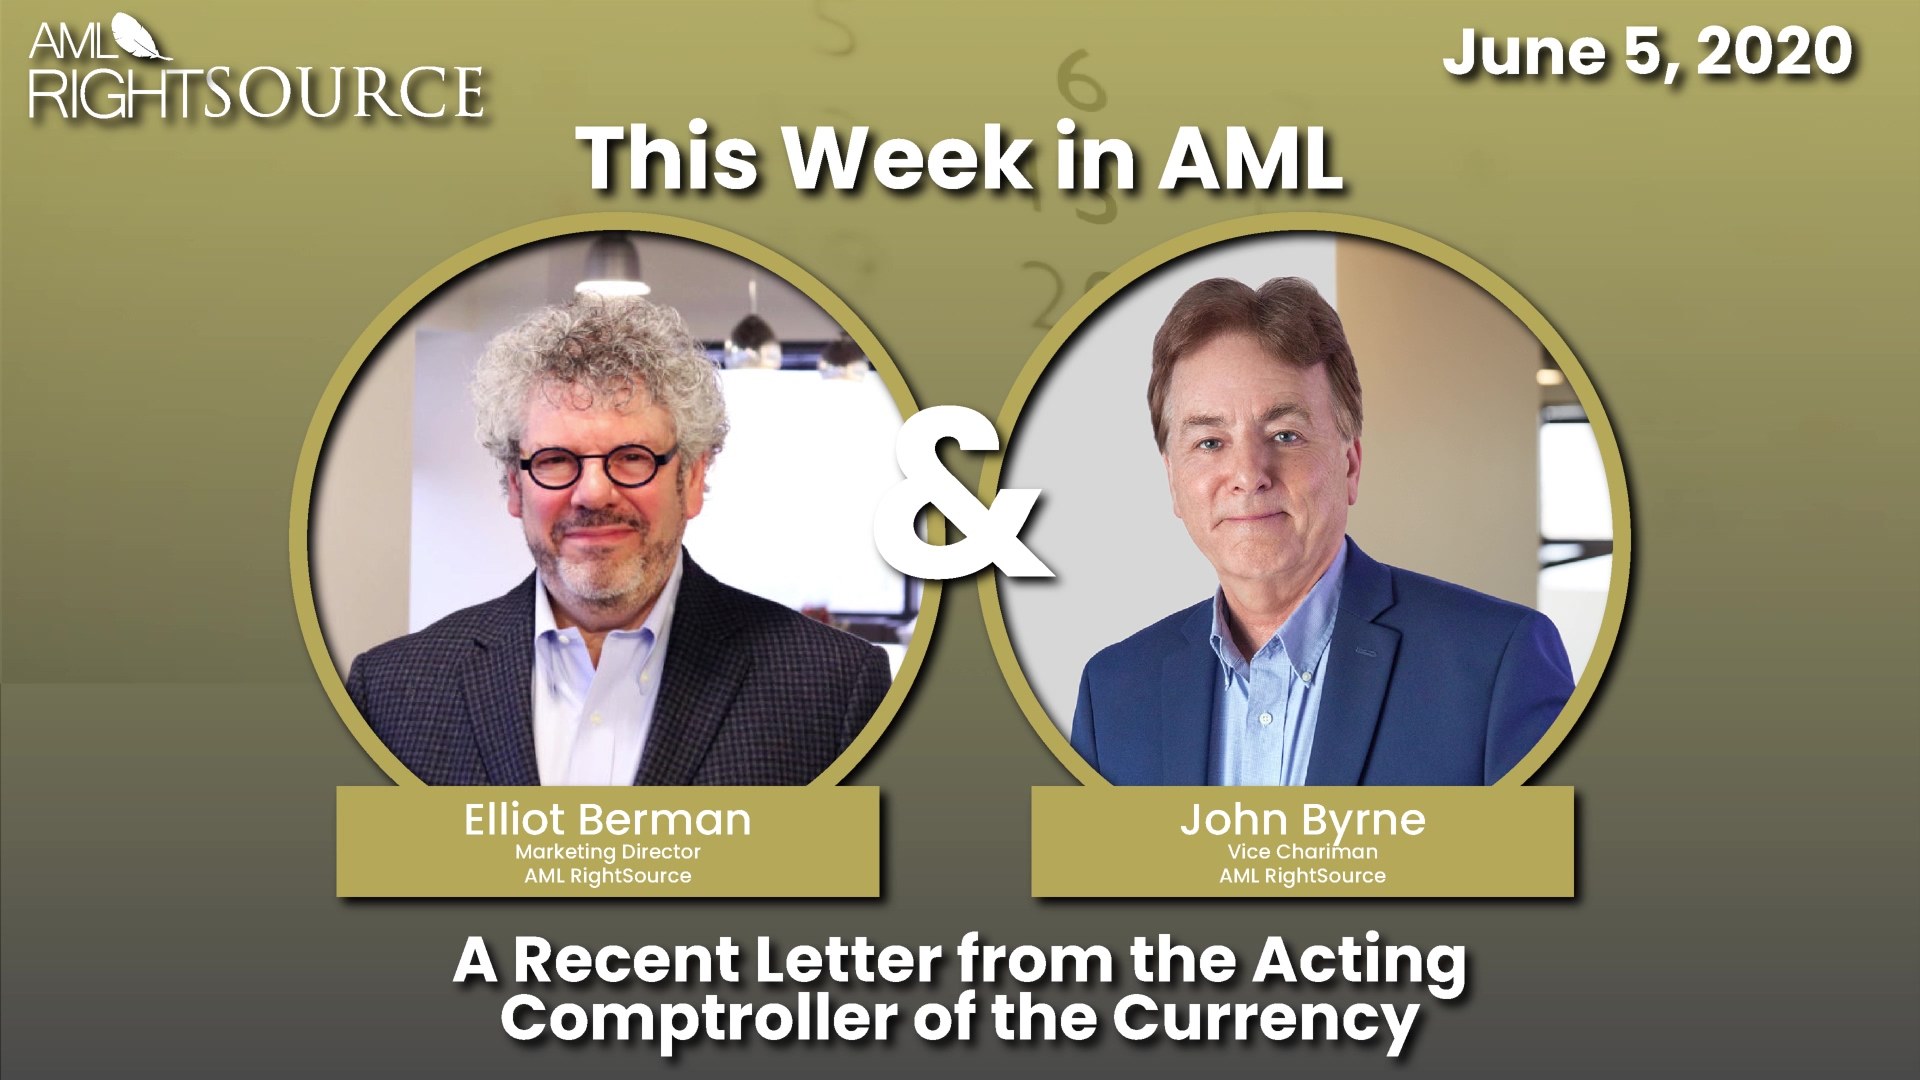 This Week in AML - A Recent Letter from the Acting Comptroller of the Currency